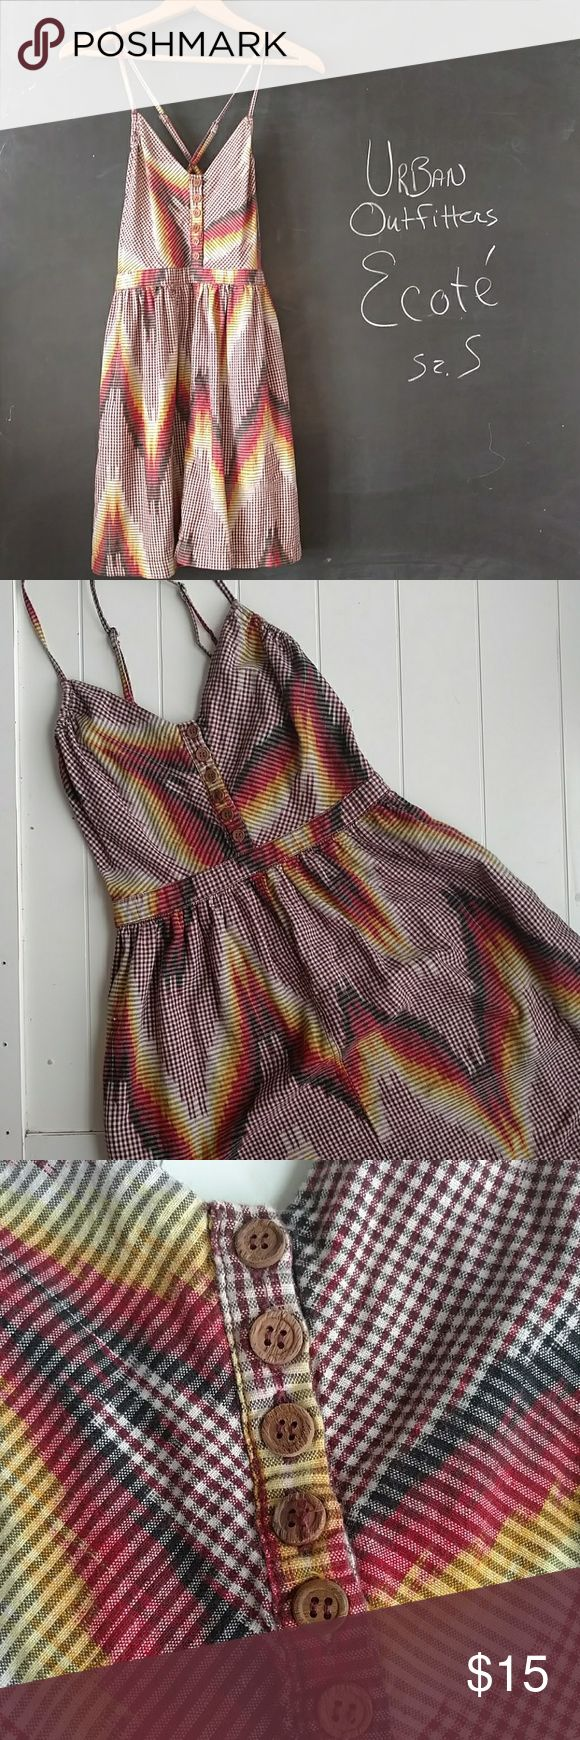 Urban Outfitters Ecote Sun Dress Sz S Urban Outfitters Ecote sun dress.  Sz S   Rust, yellow, black colors in checked pattern.  Looks like fire! Has two pockets!  Bust 28-32 in.  Can stretch to 34 in. Waist 25-28 in. Skirt length is above knee.  Dress measures approximately 33 in.  Adjustable shoulder straps. Cotton material.  Smoke and Pet Free environment.  Very good Preowned Condition.  Washed a handful of times. Urban Outfitters Dresses